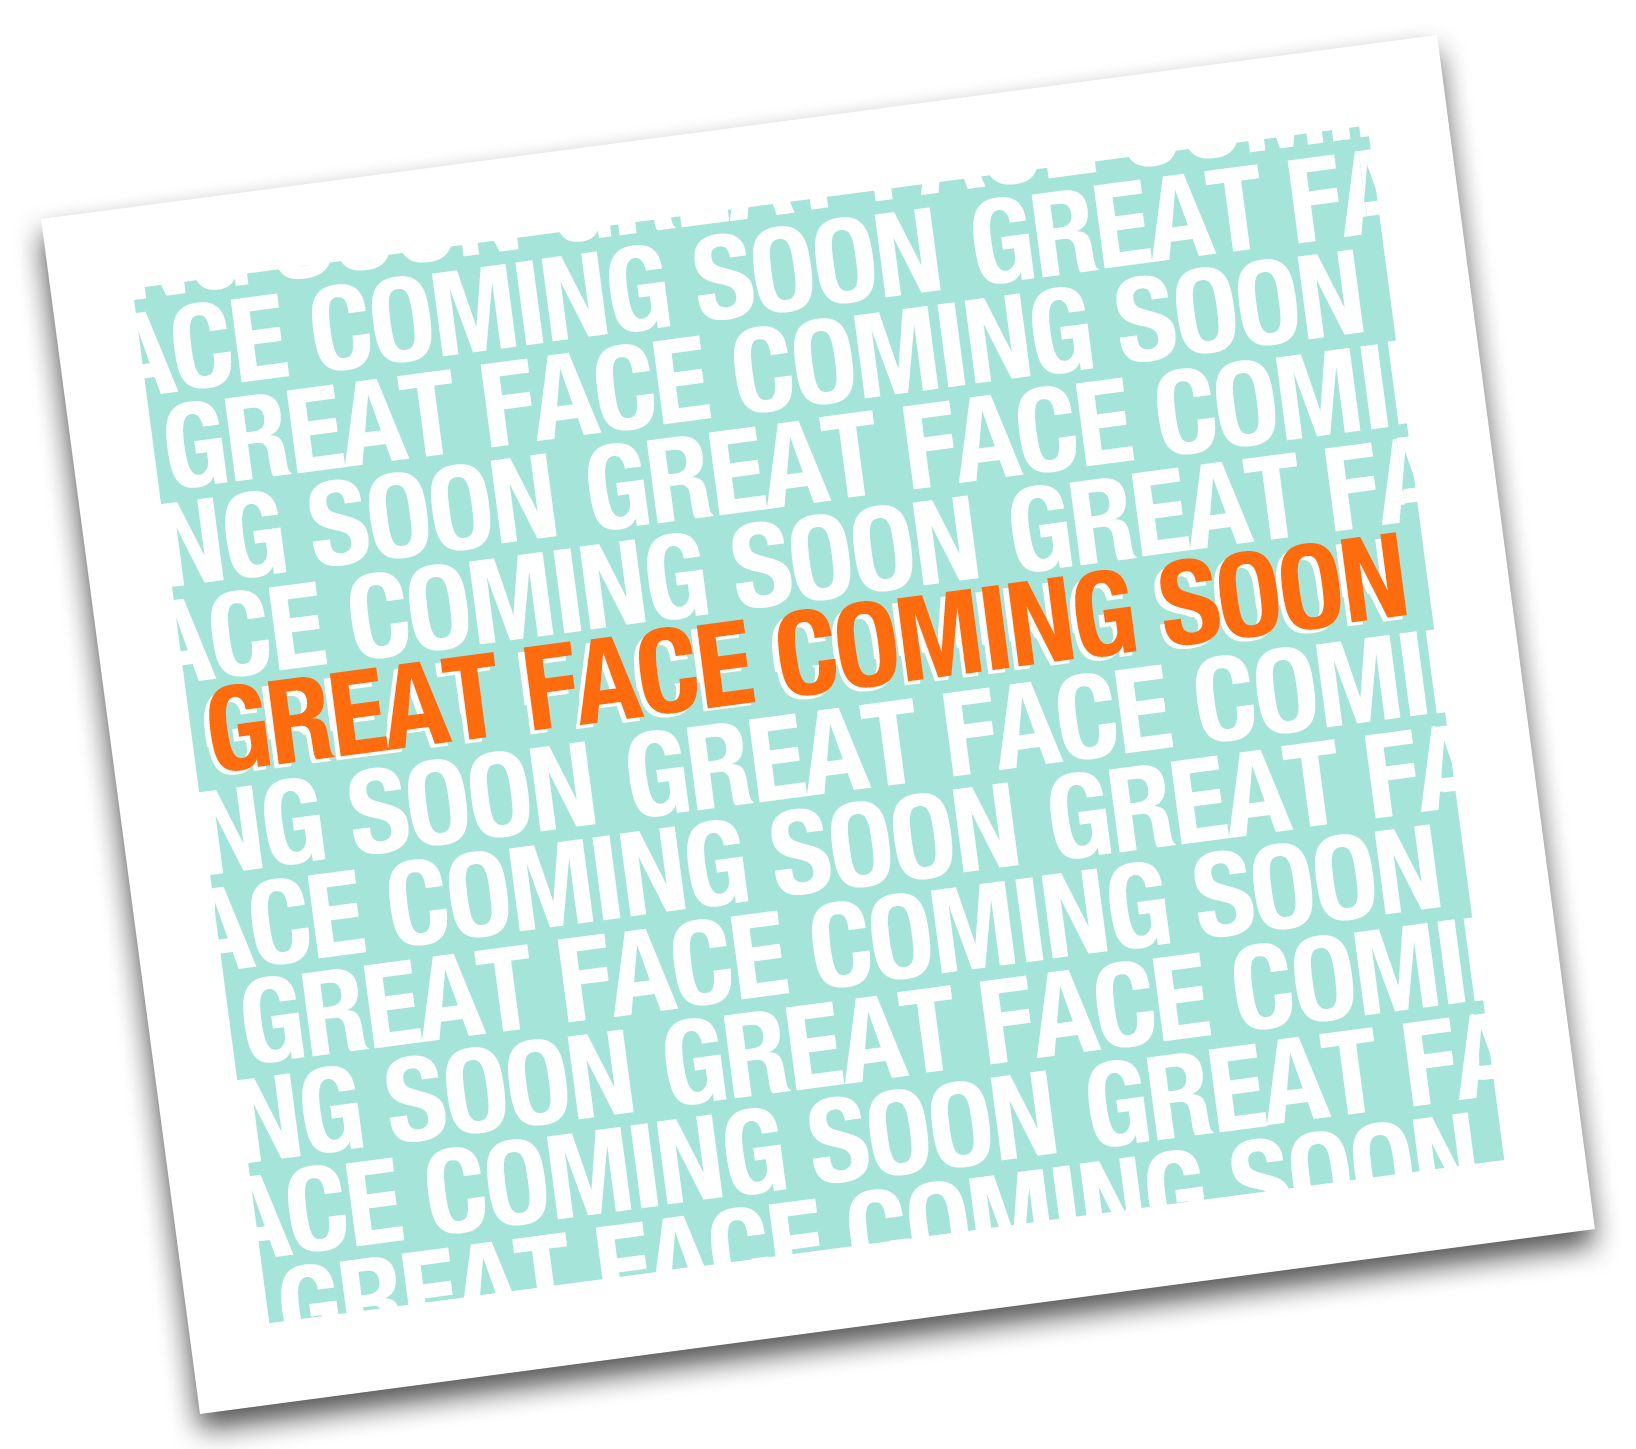 great face coming soon